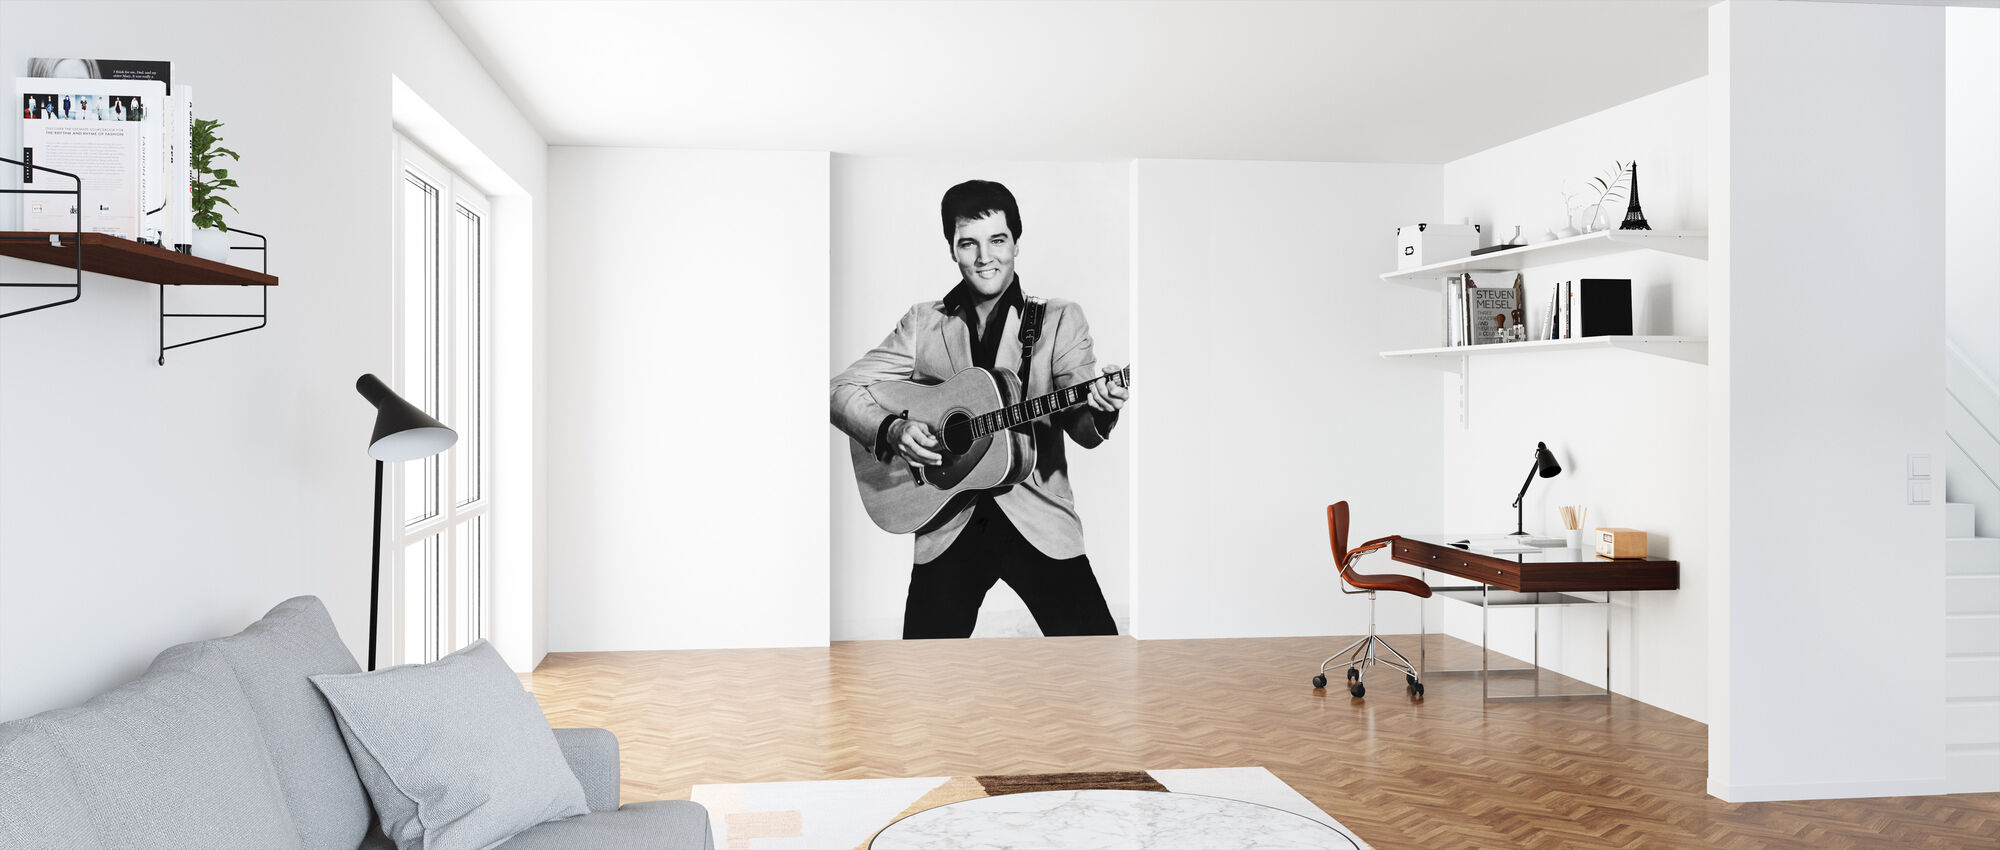 The King 1960s - Wallpaper - Office